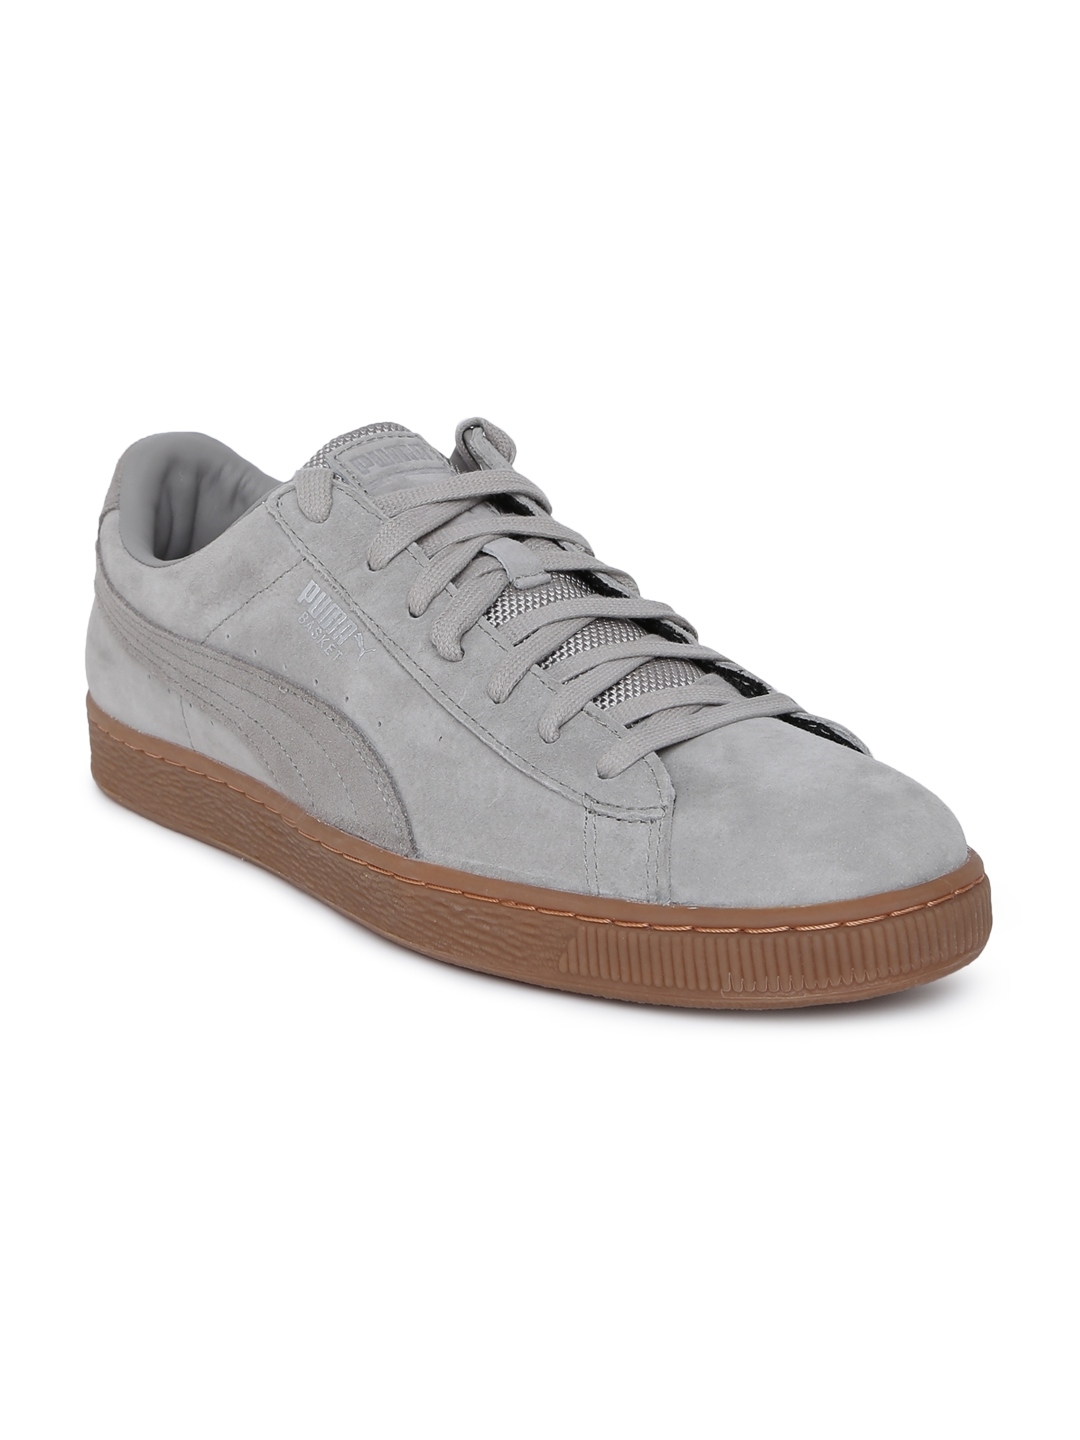 new product 6315f 80ad6 Puma Unisex Grey Basket Classic Weatherproof Leather Sneakers